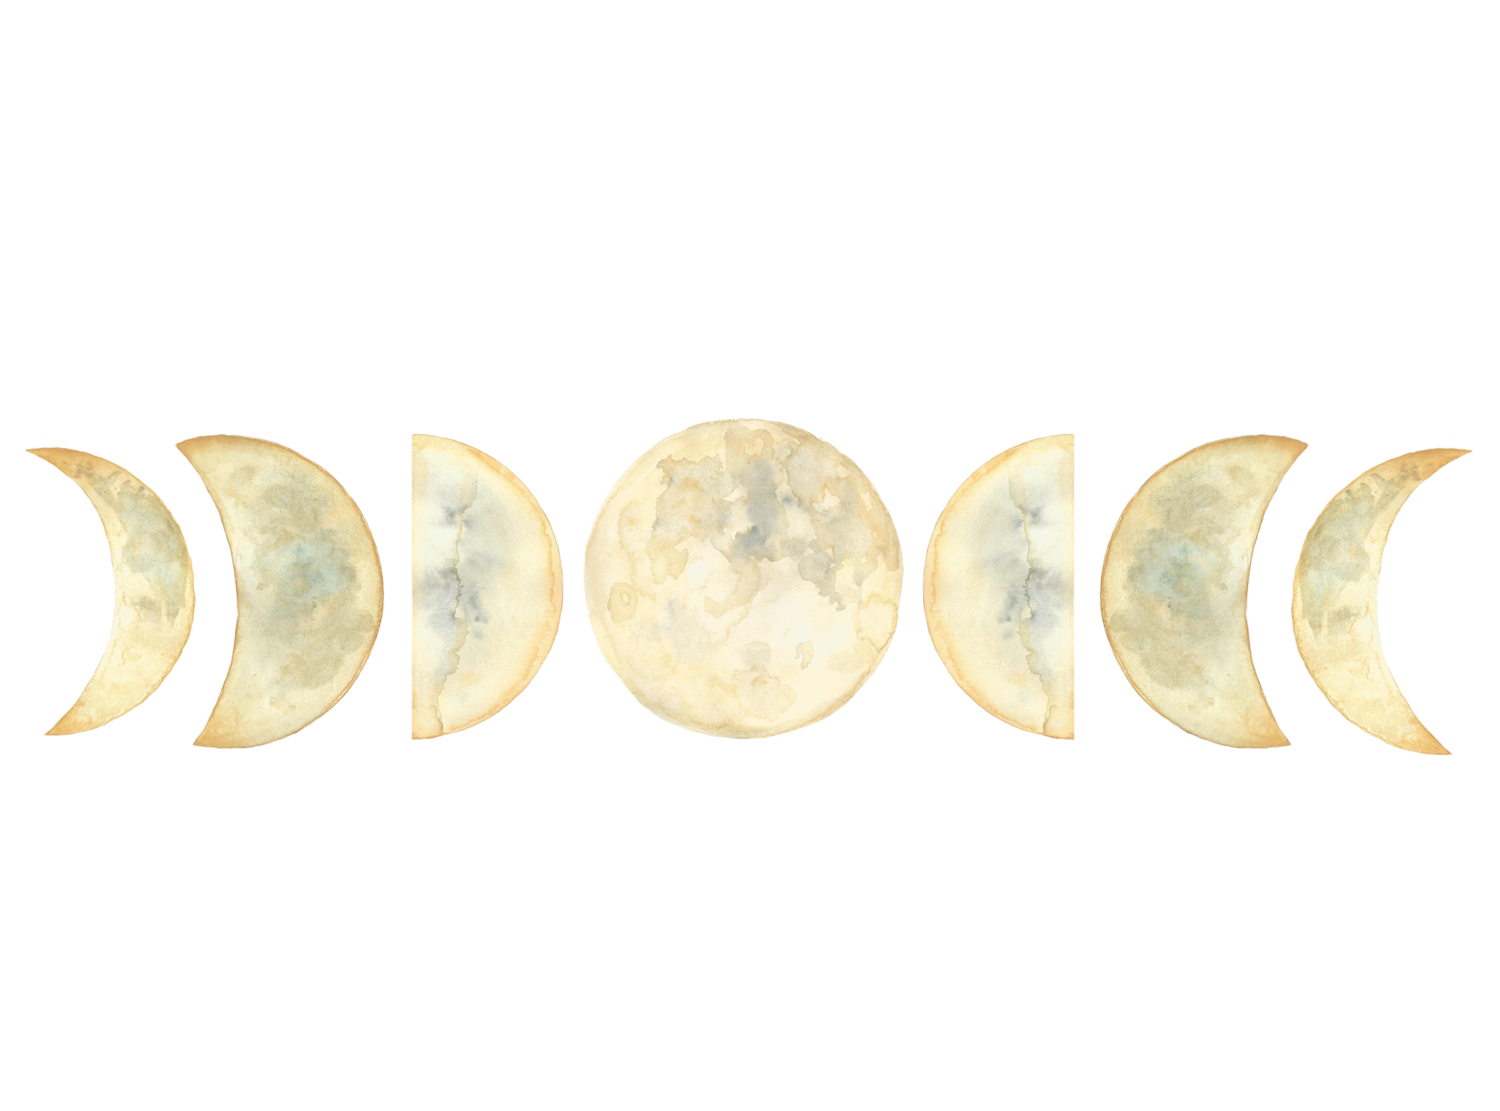 Moon phases png. Celestial hillary heydle moonphasespng